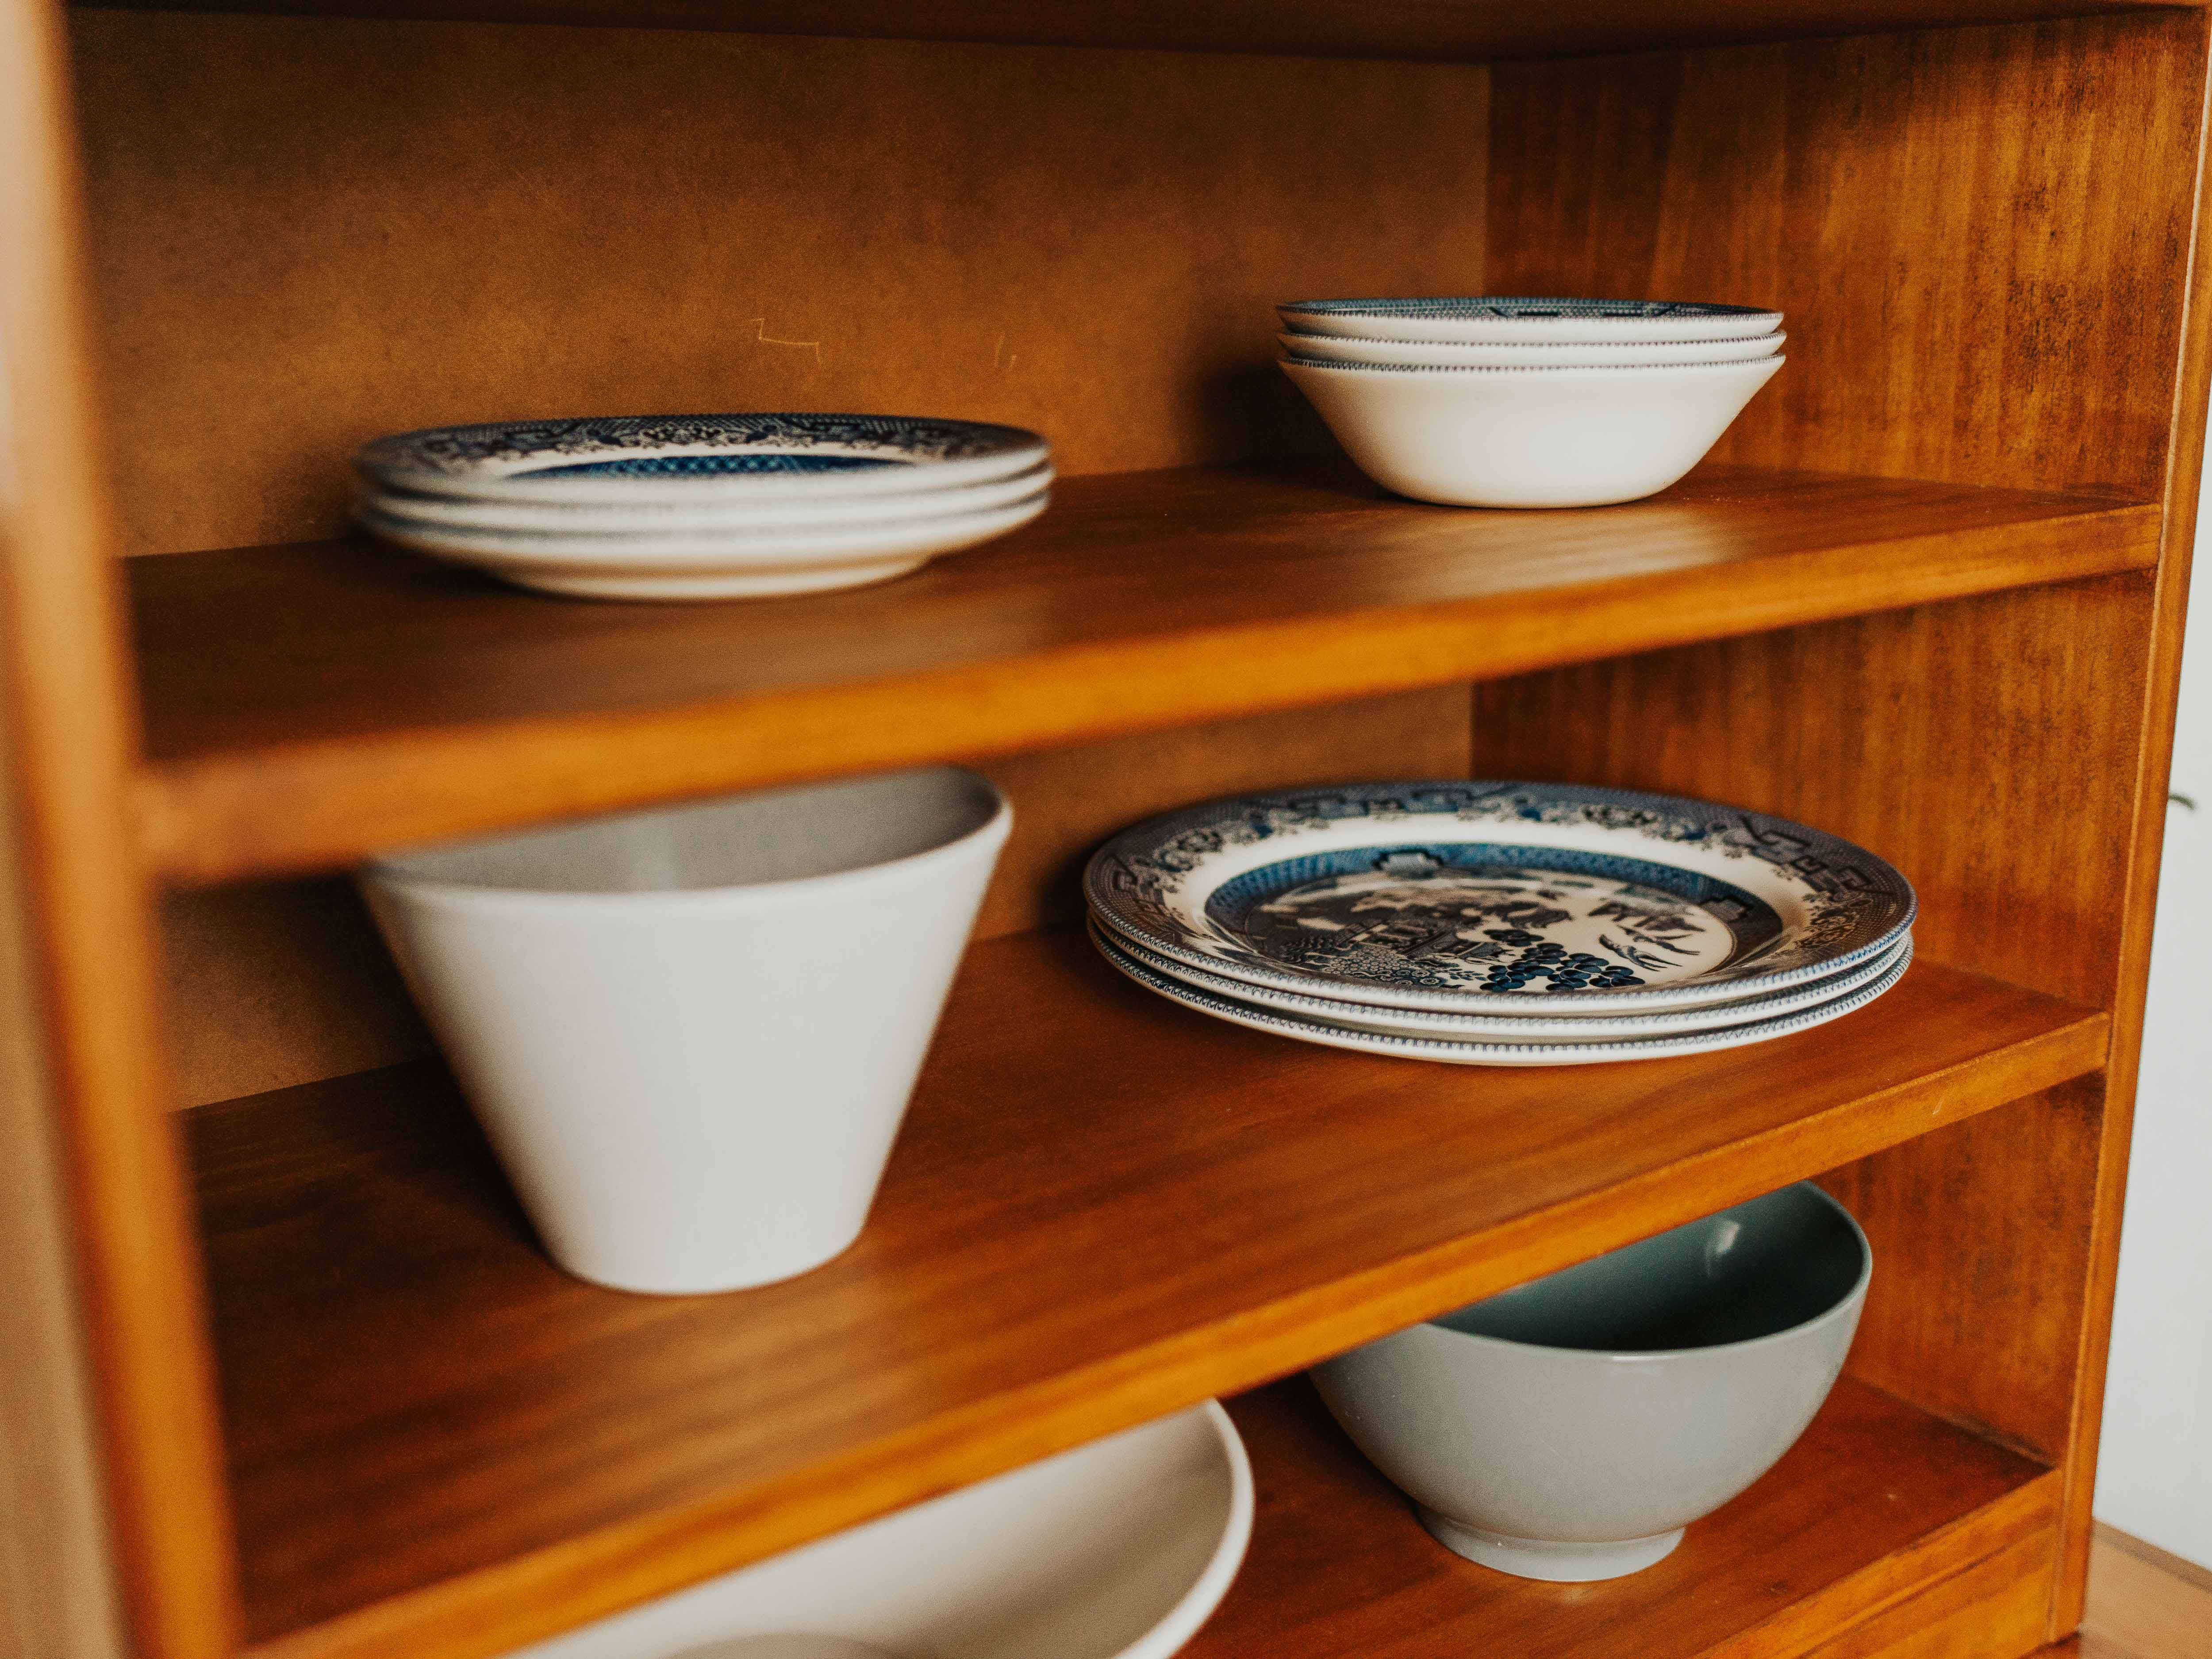 Blue willow china in guest kitchen of Turoa suite.